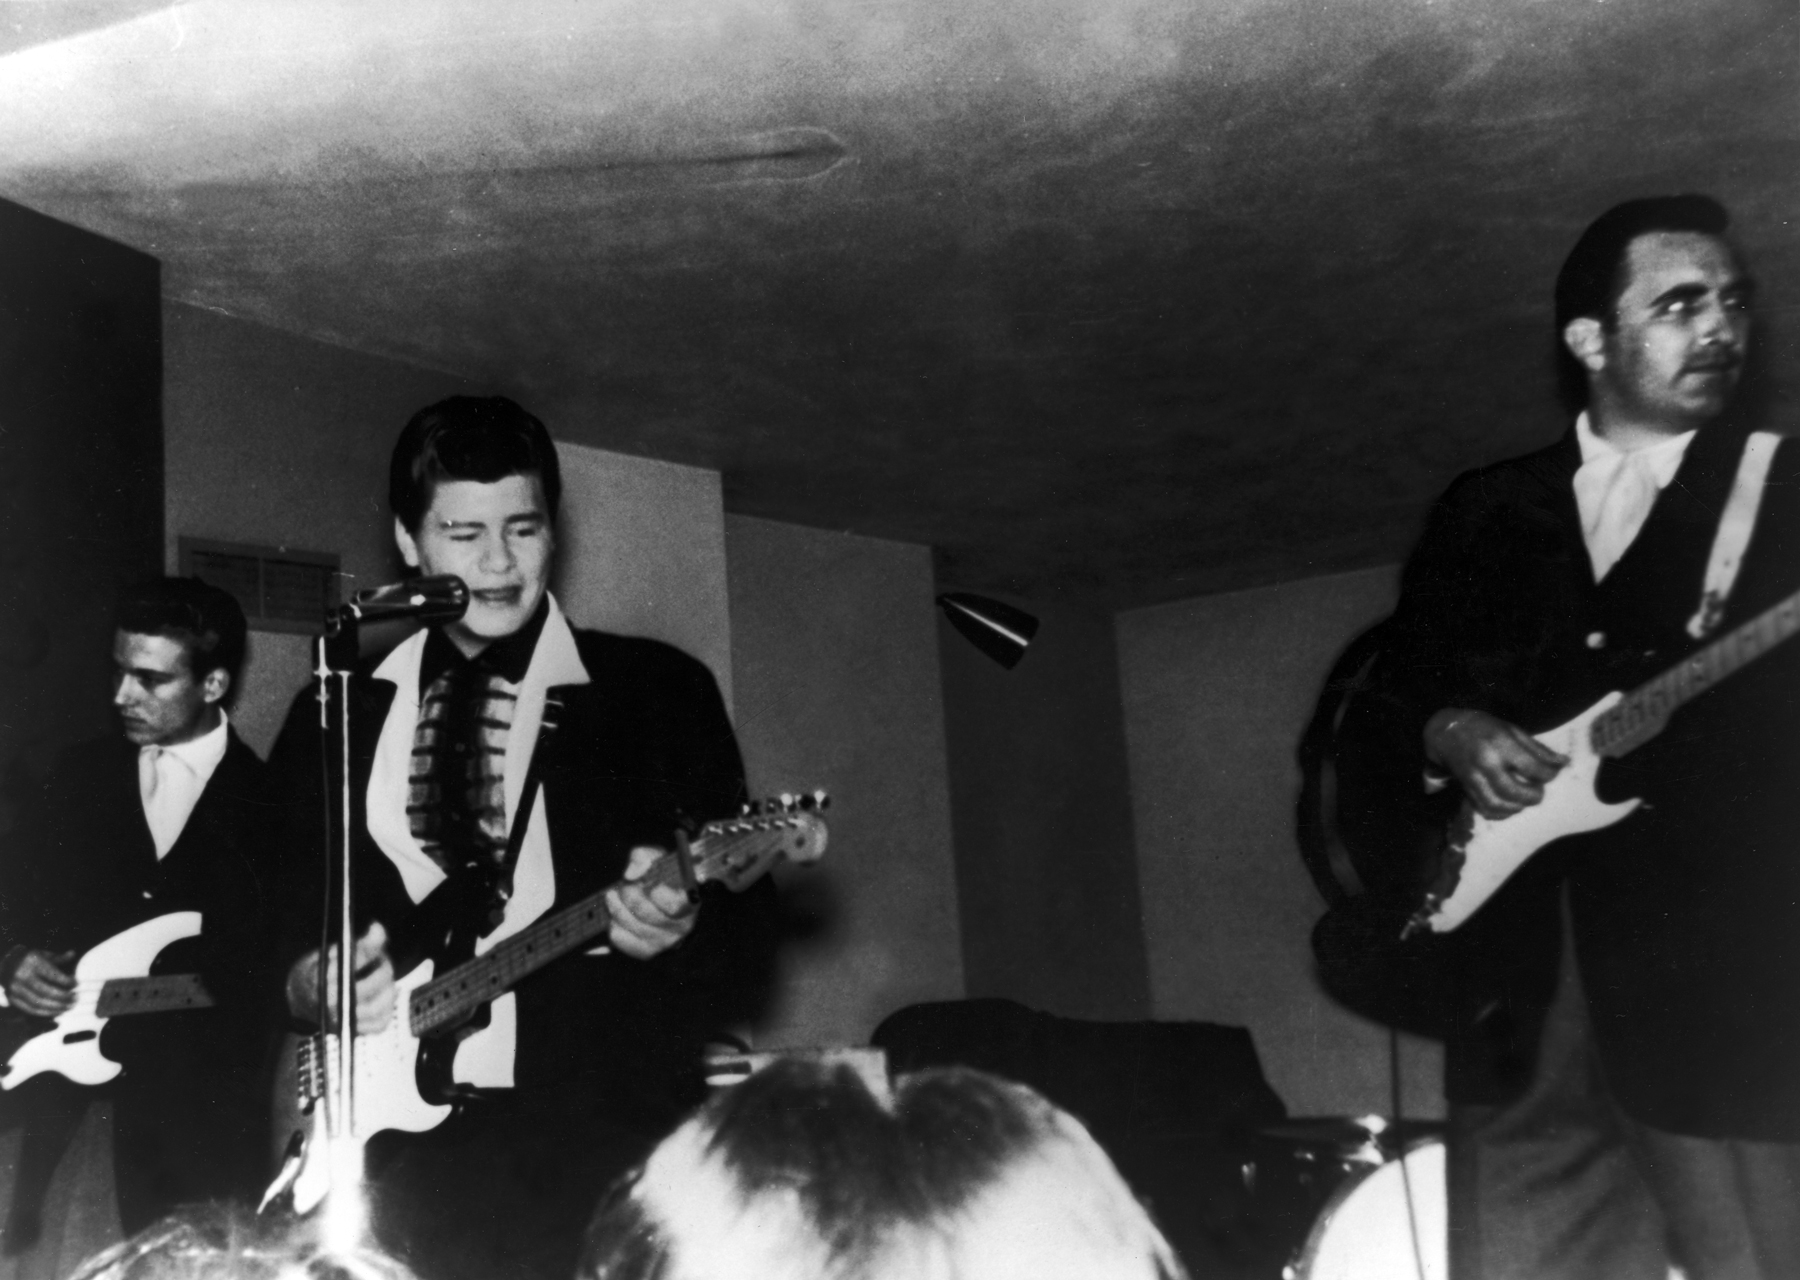 American rock 'n' roll singer Ritchie Valens (1941 - 1959, centre) in concert, 1950s. (Photo by Archive Photos/Getty Images)